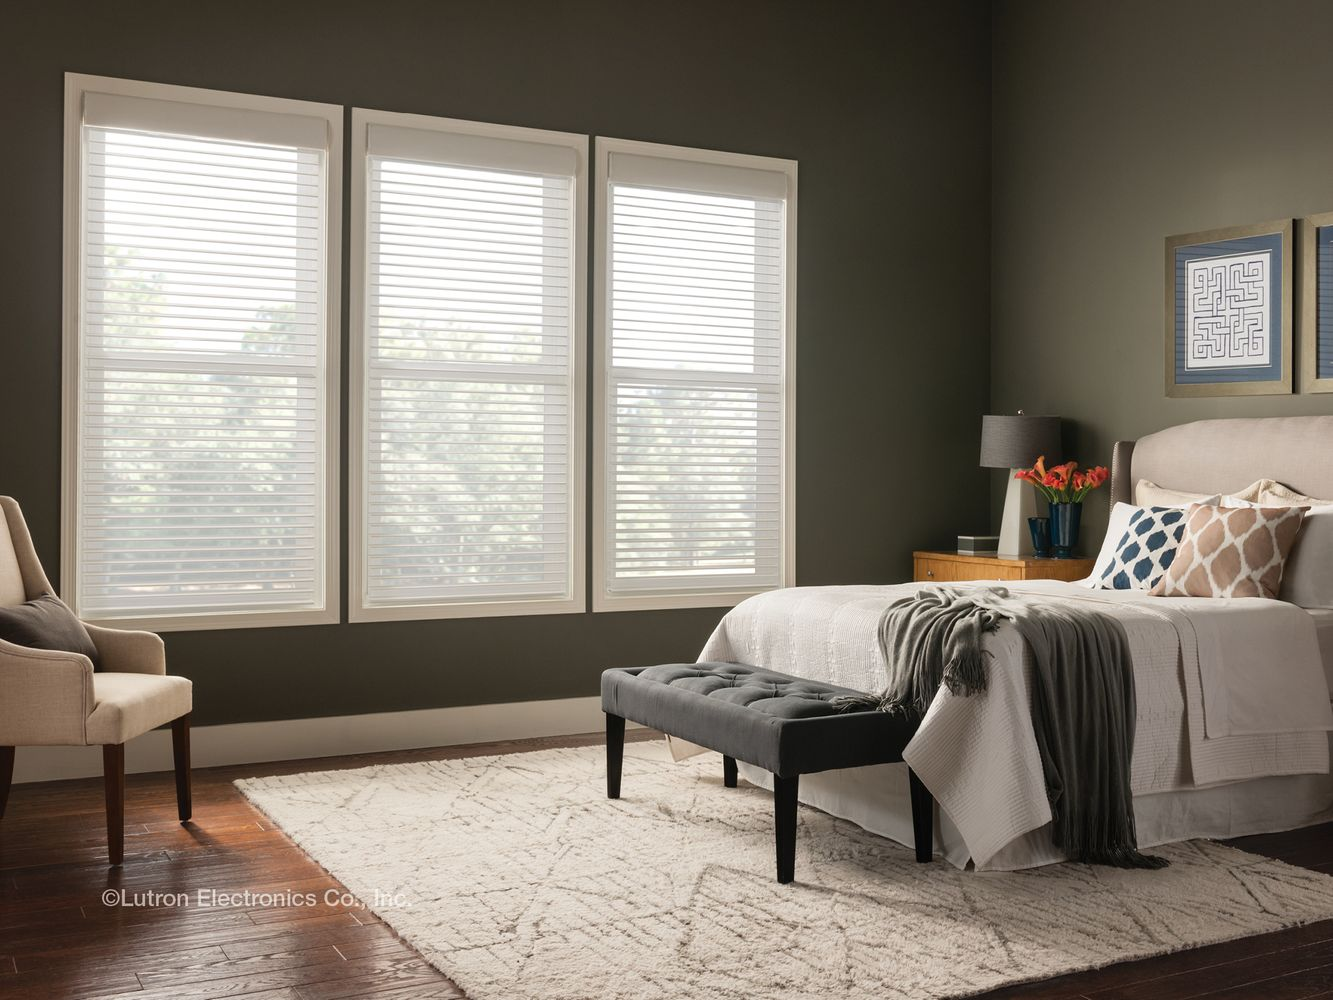 Lutron Smart Shades and Blinds Distributor, Smart Home